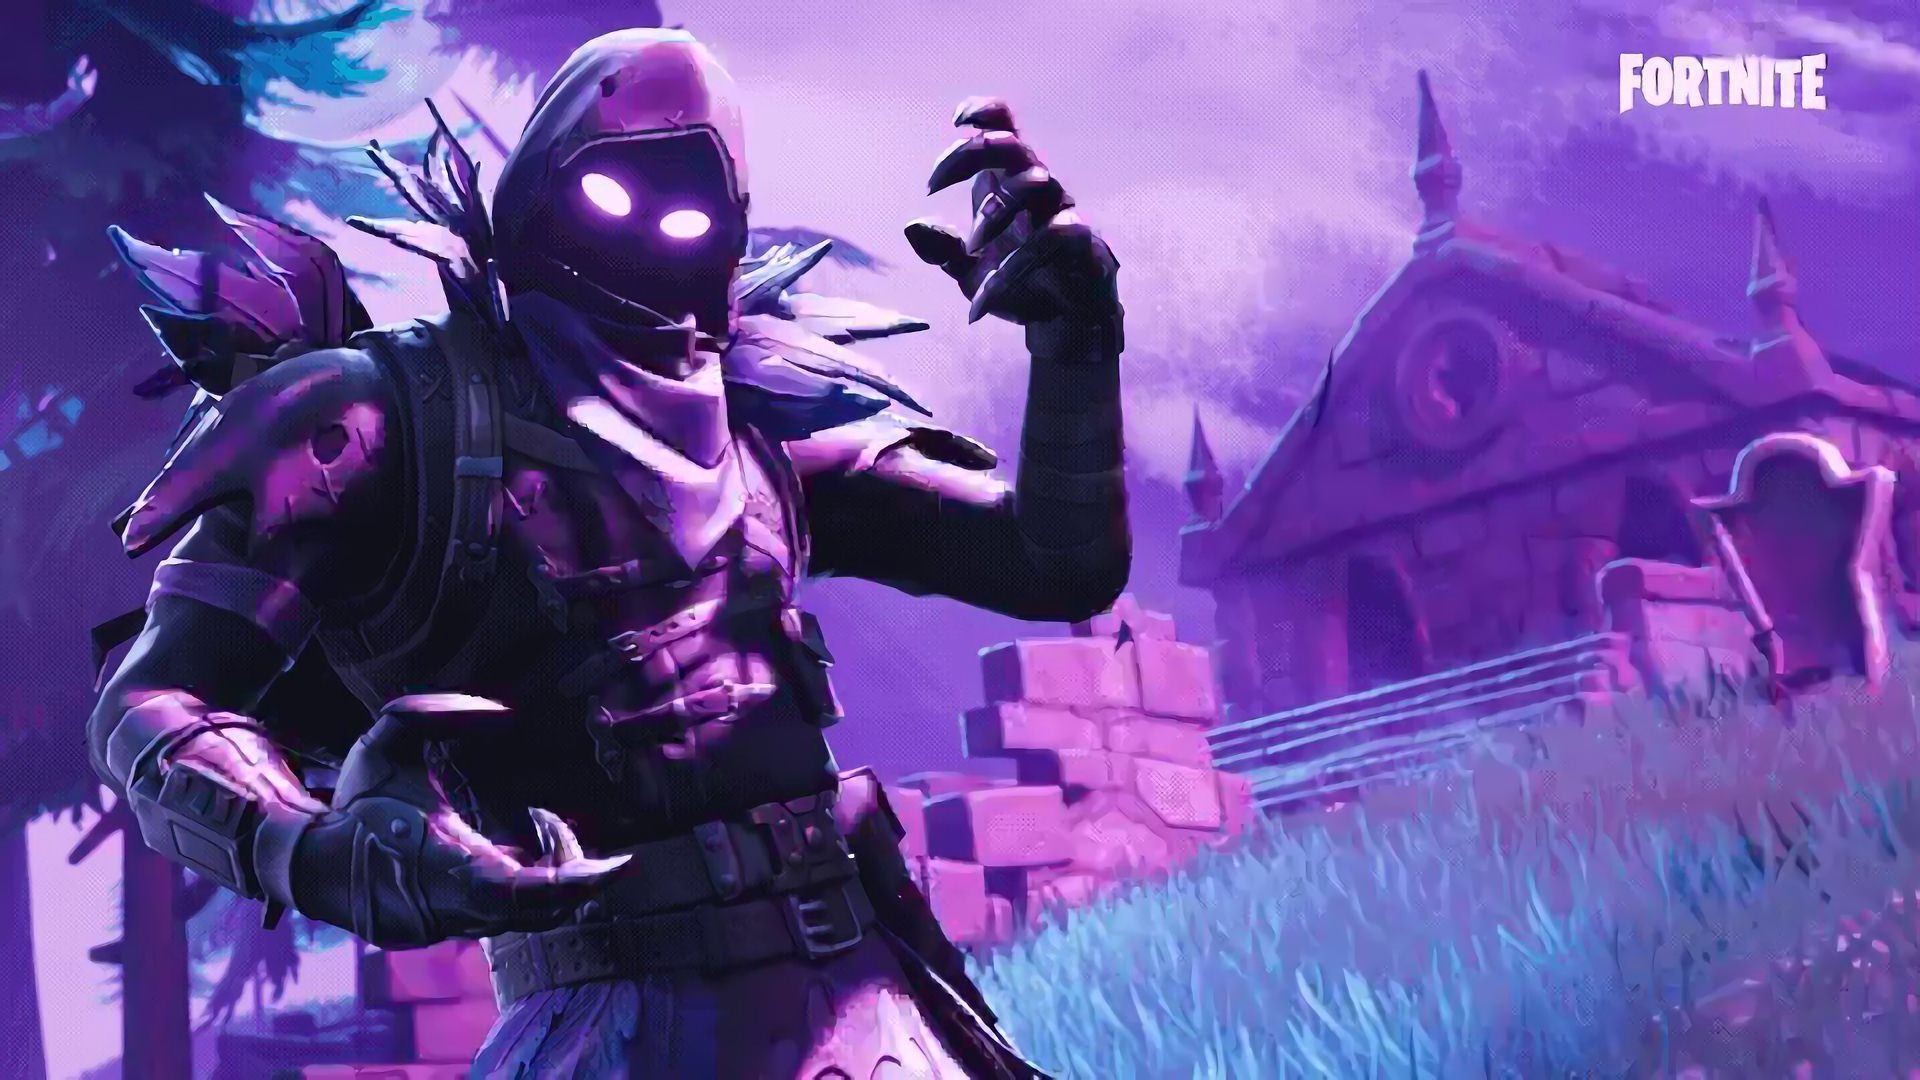 62 Best Free Ravens Fortnite Battle Royal Wallpapers Wallpaperaccess